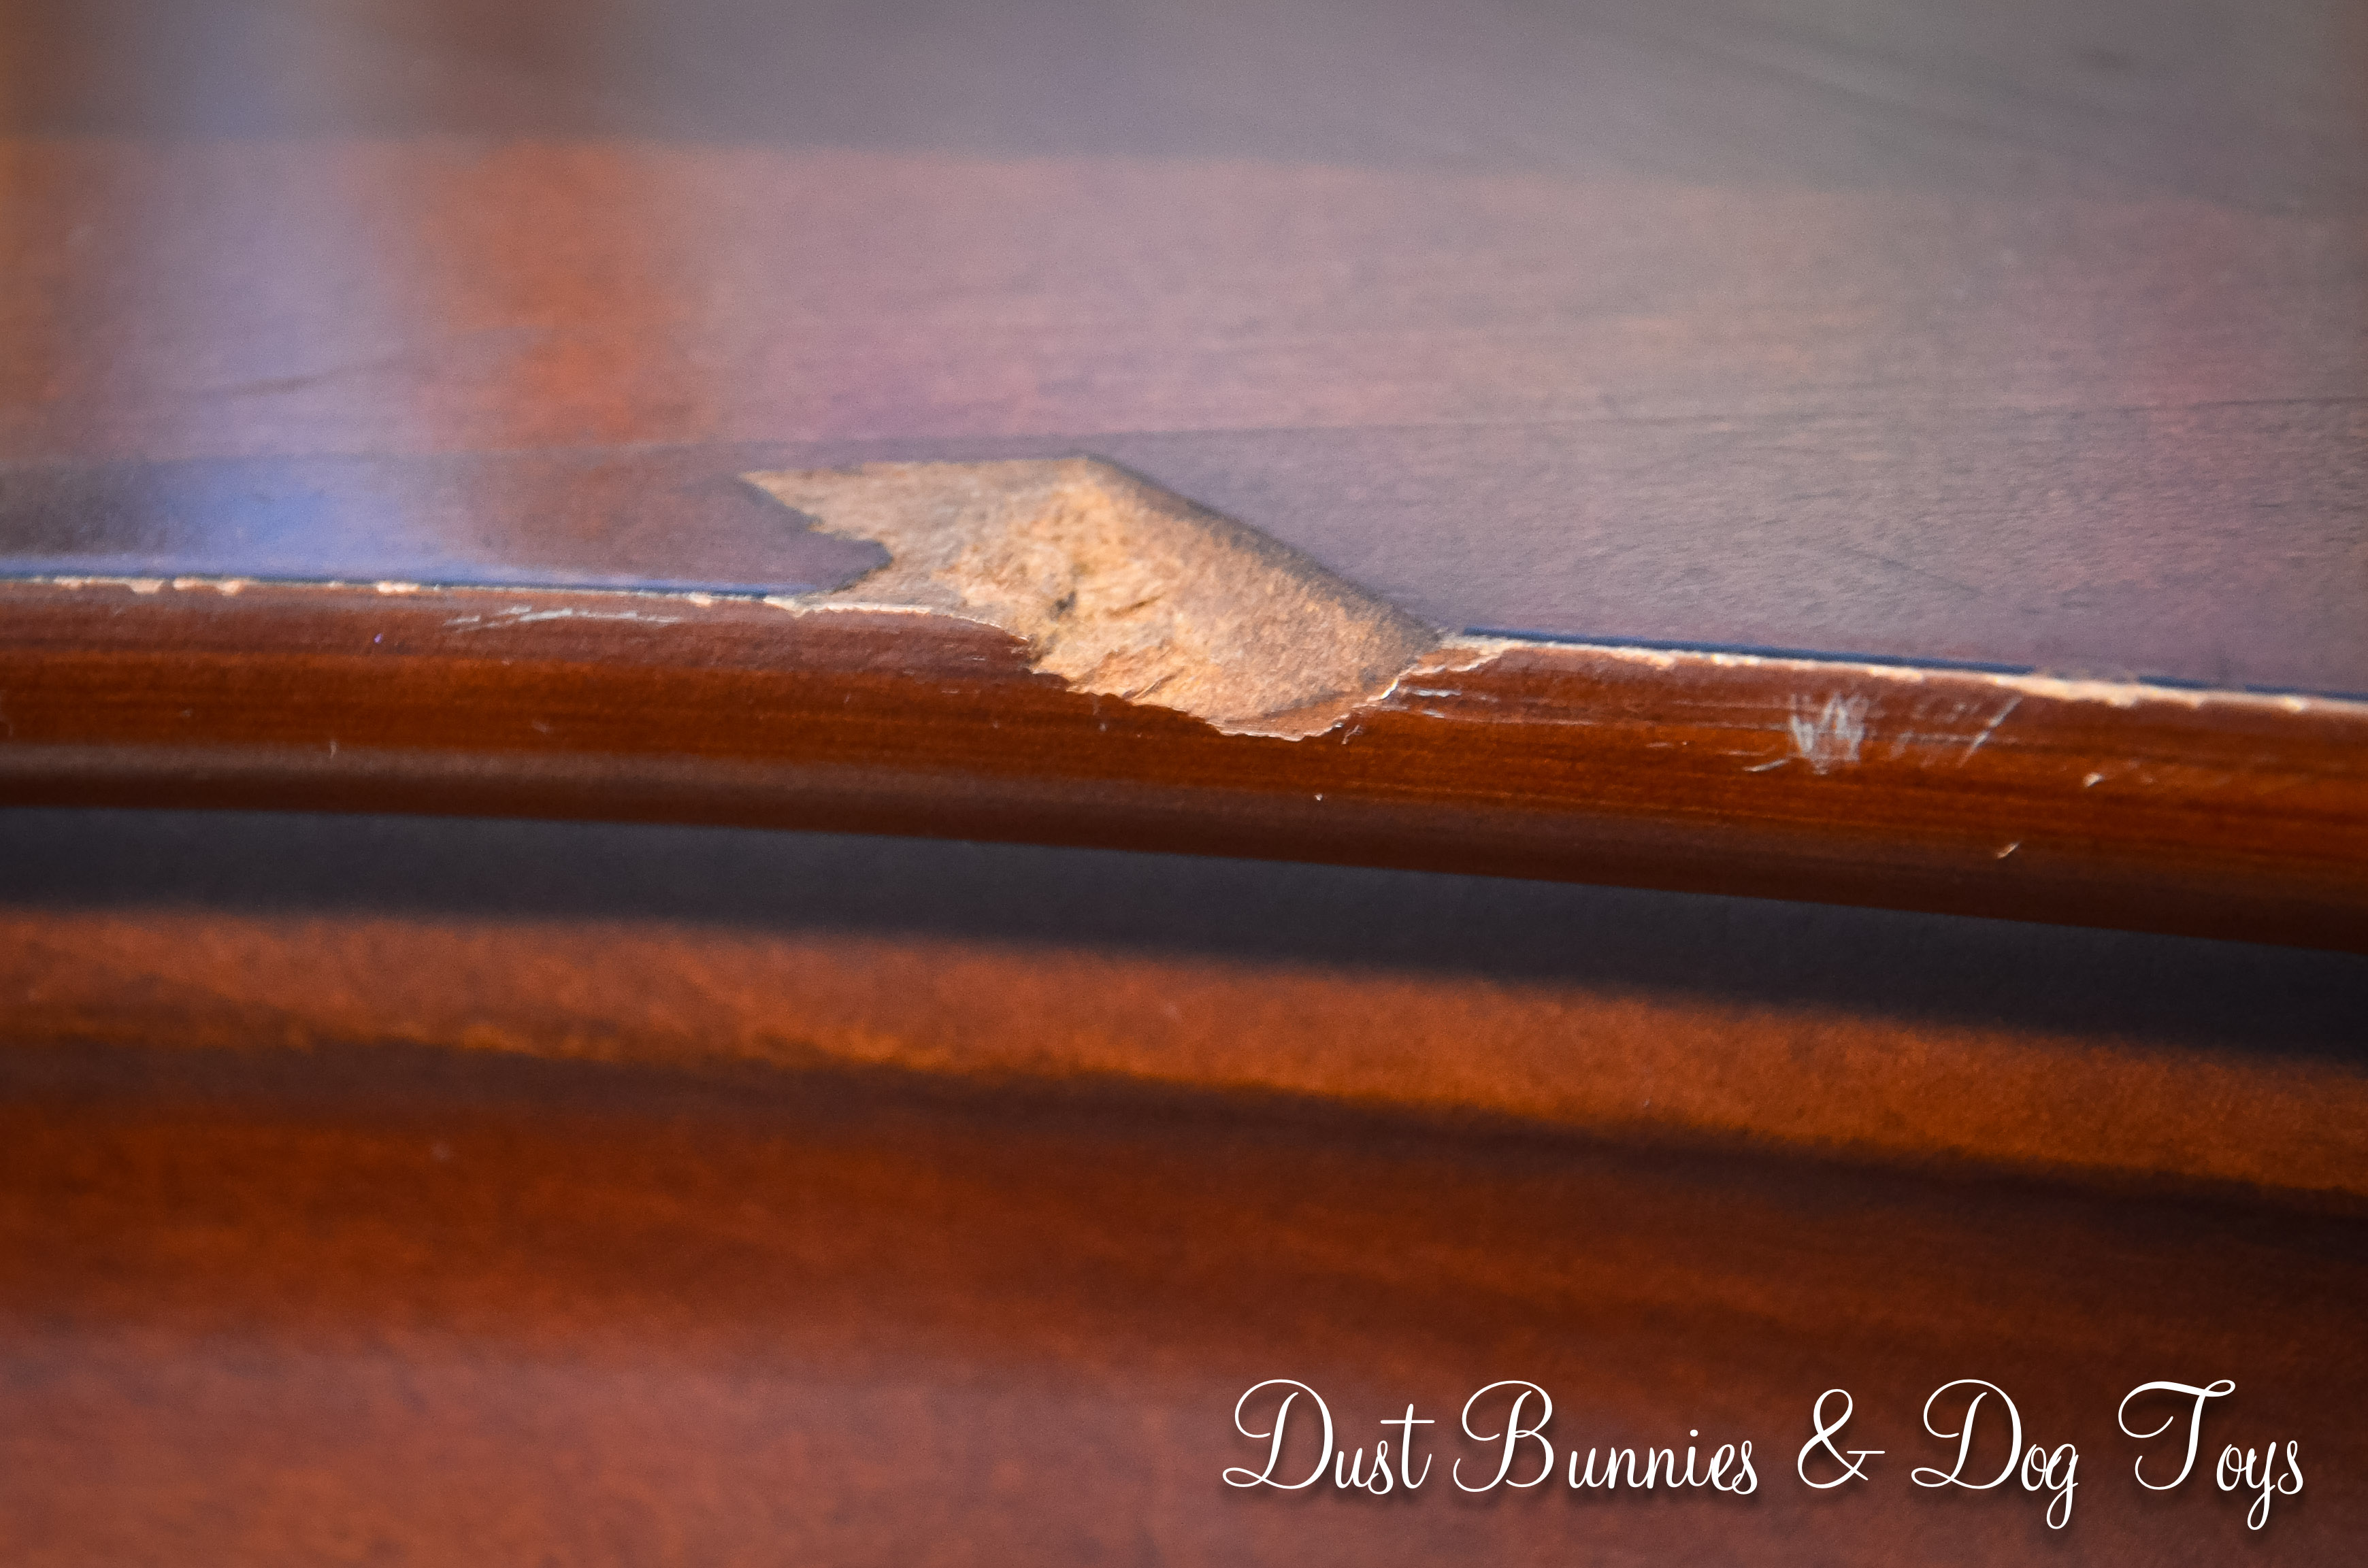 Bedroom – Dust Bunnies and Dog Toys